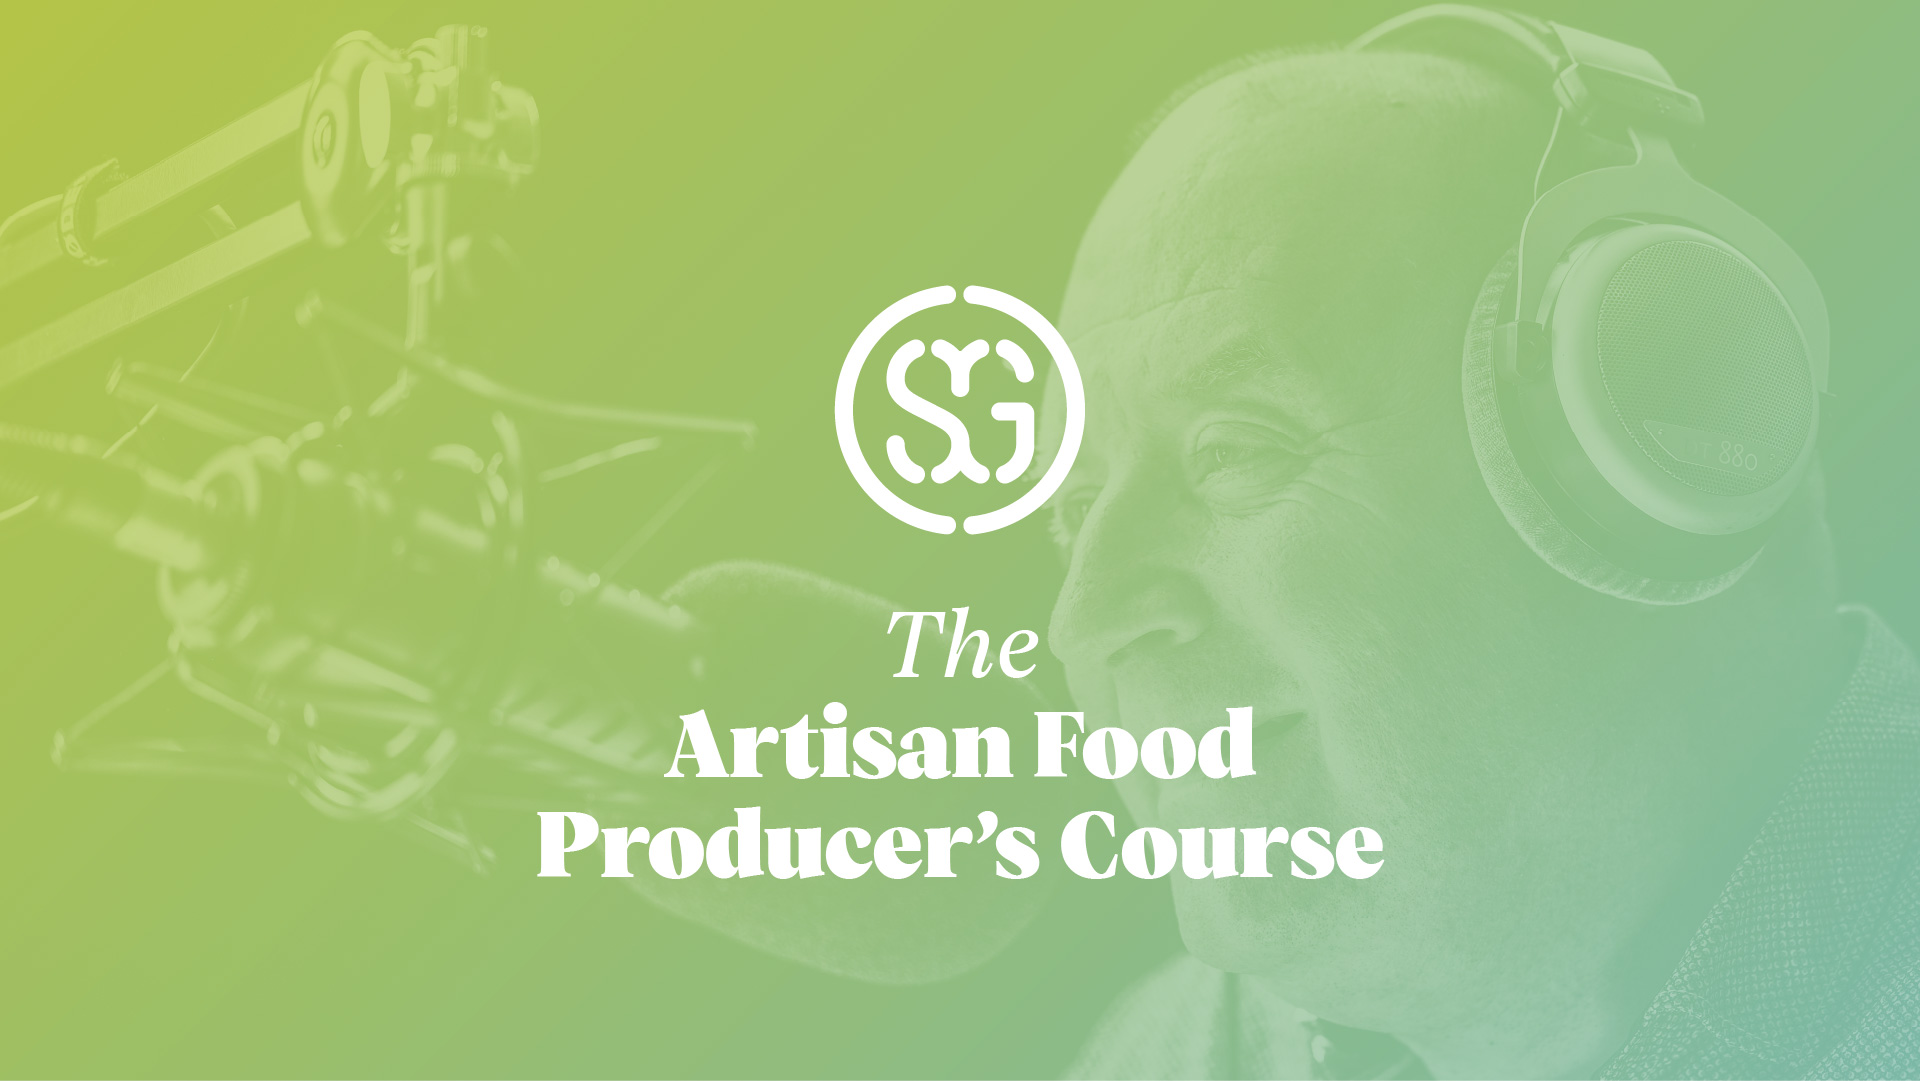 The Seasoned Grocer - Artisan Food Producer's Course